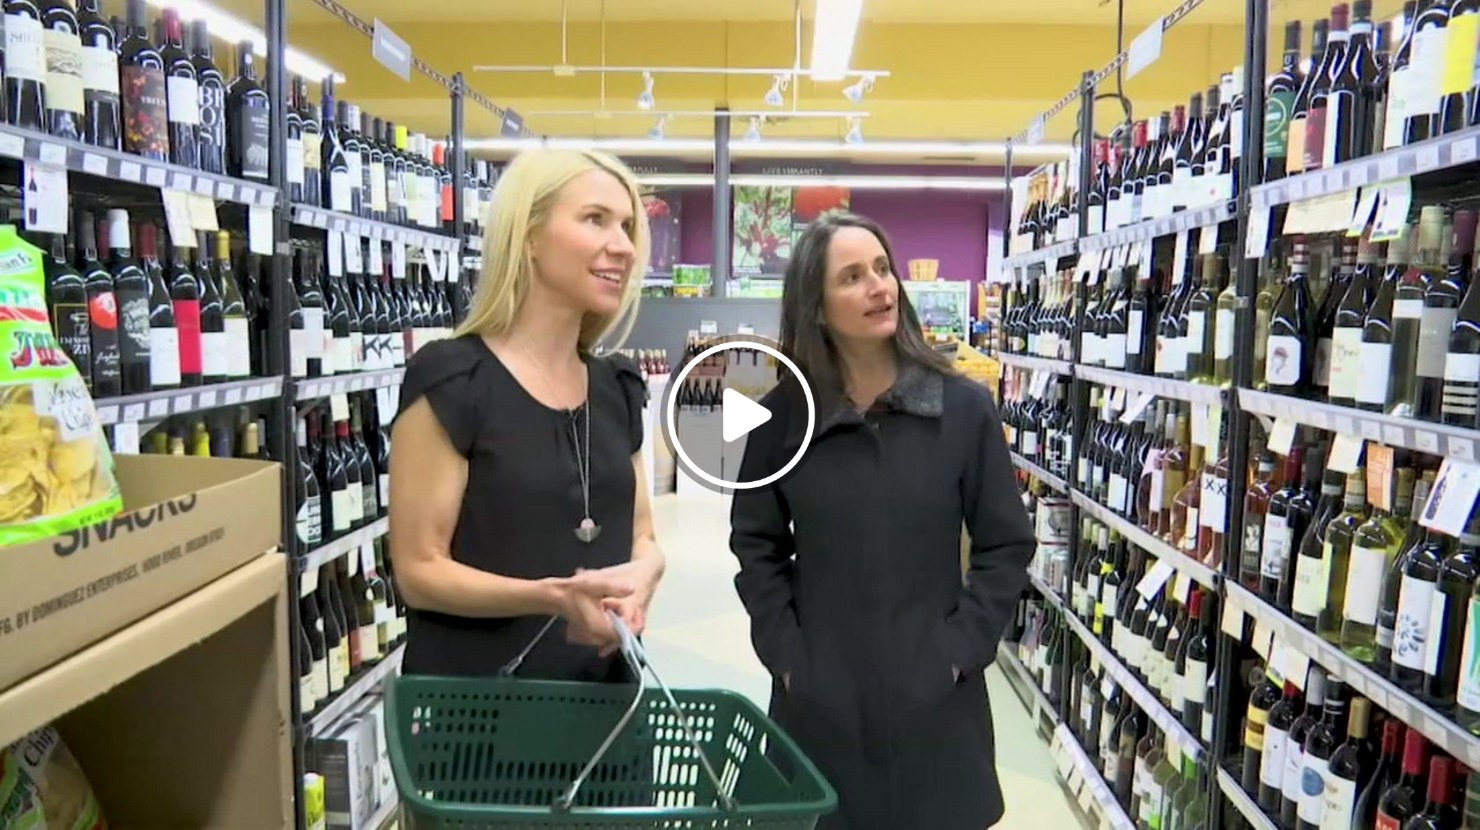 Culinary instructor Lauren Chandler helps Stephanie Kralevich re-stock her kitchen cupboards with a trip to Food Front Cooperative Grocery store in SW Portland. As featured on KPTV